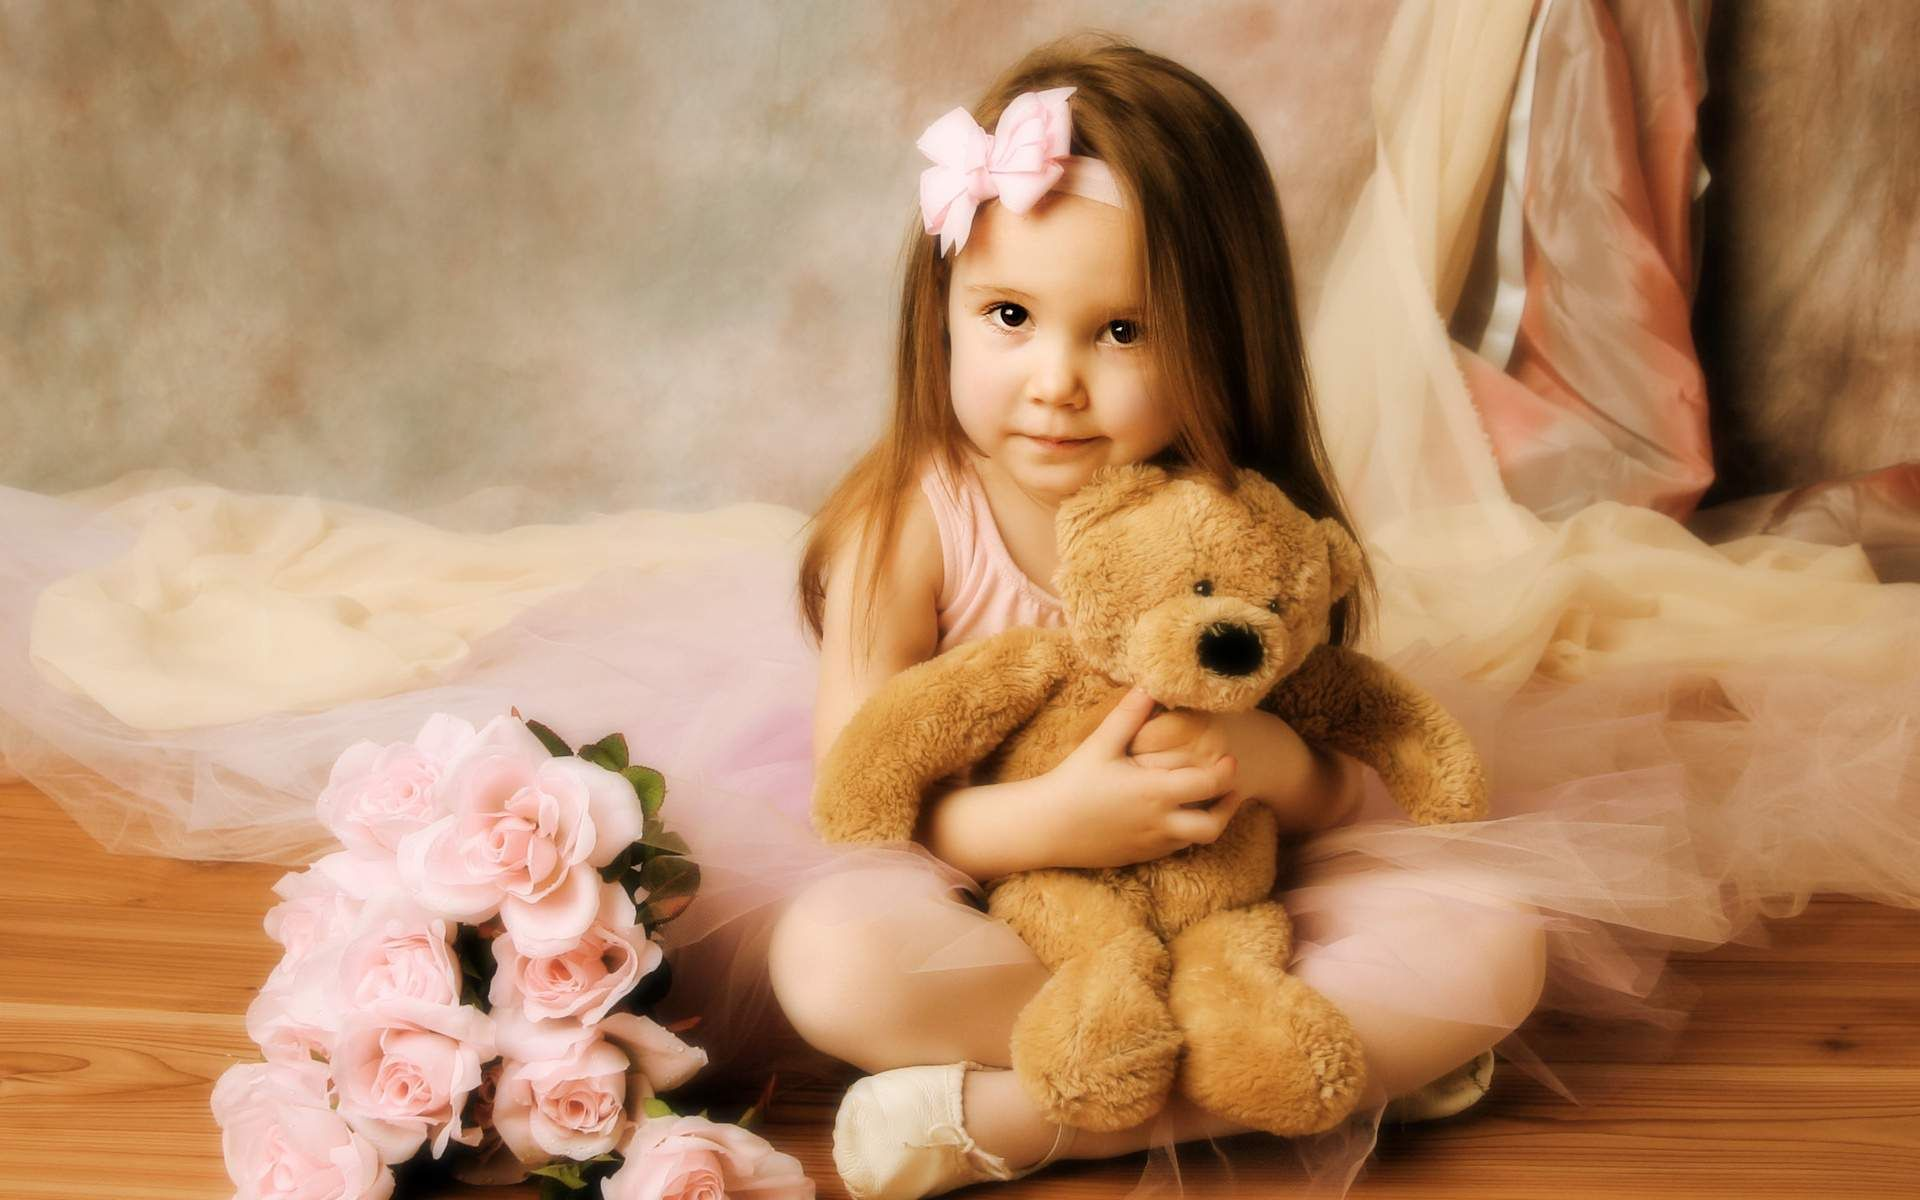 Girls-With-Teddy Bear HD Wallpapers & Images | Pics | Father